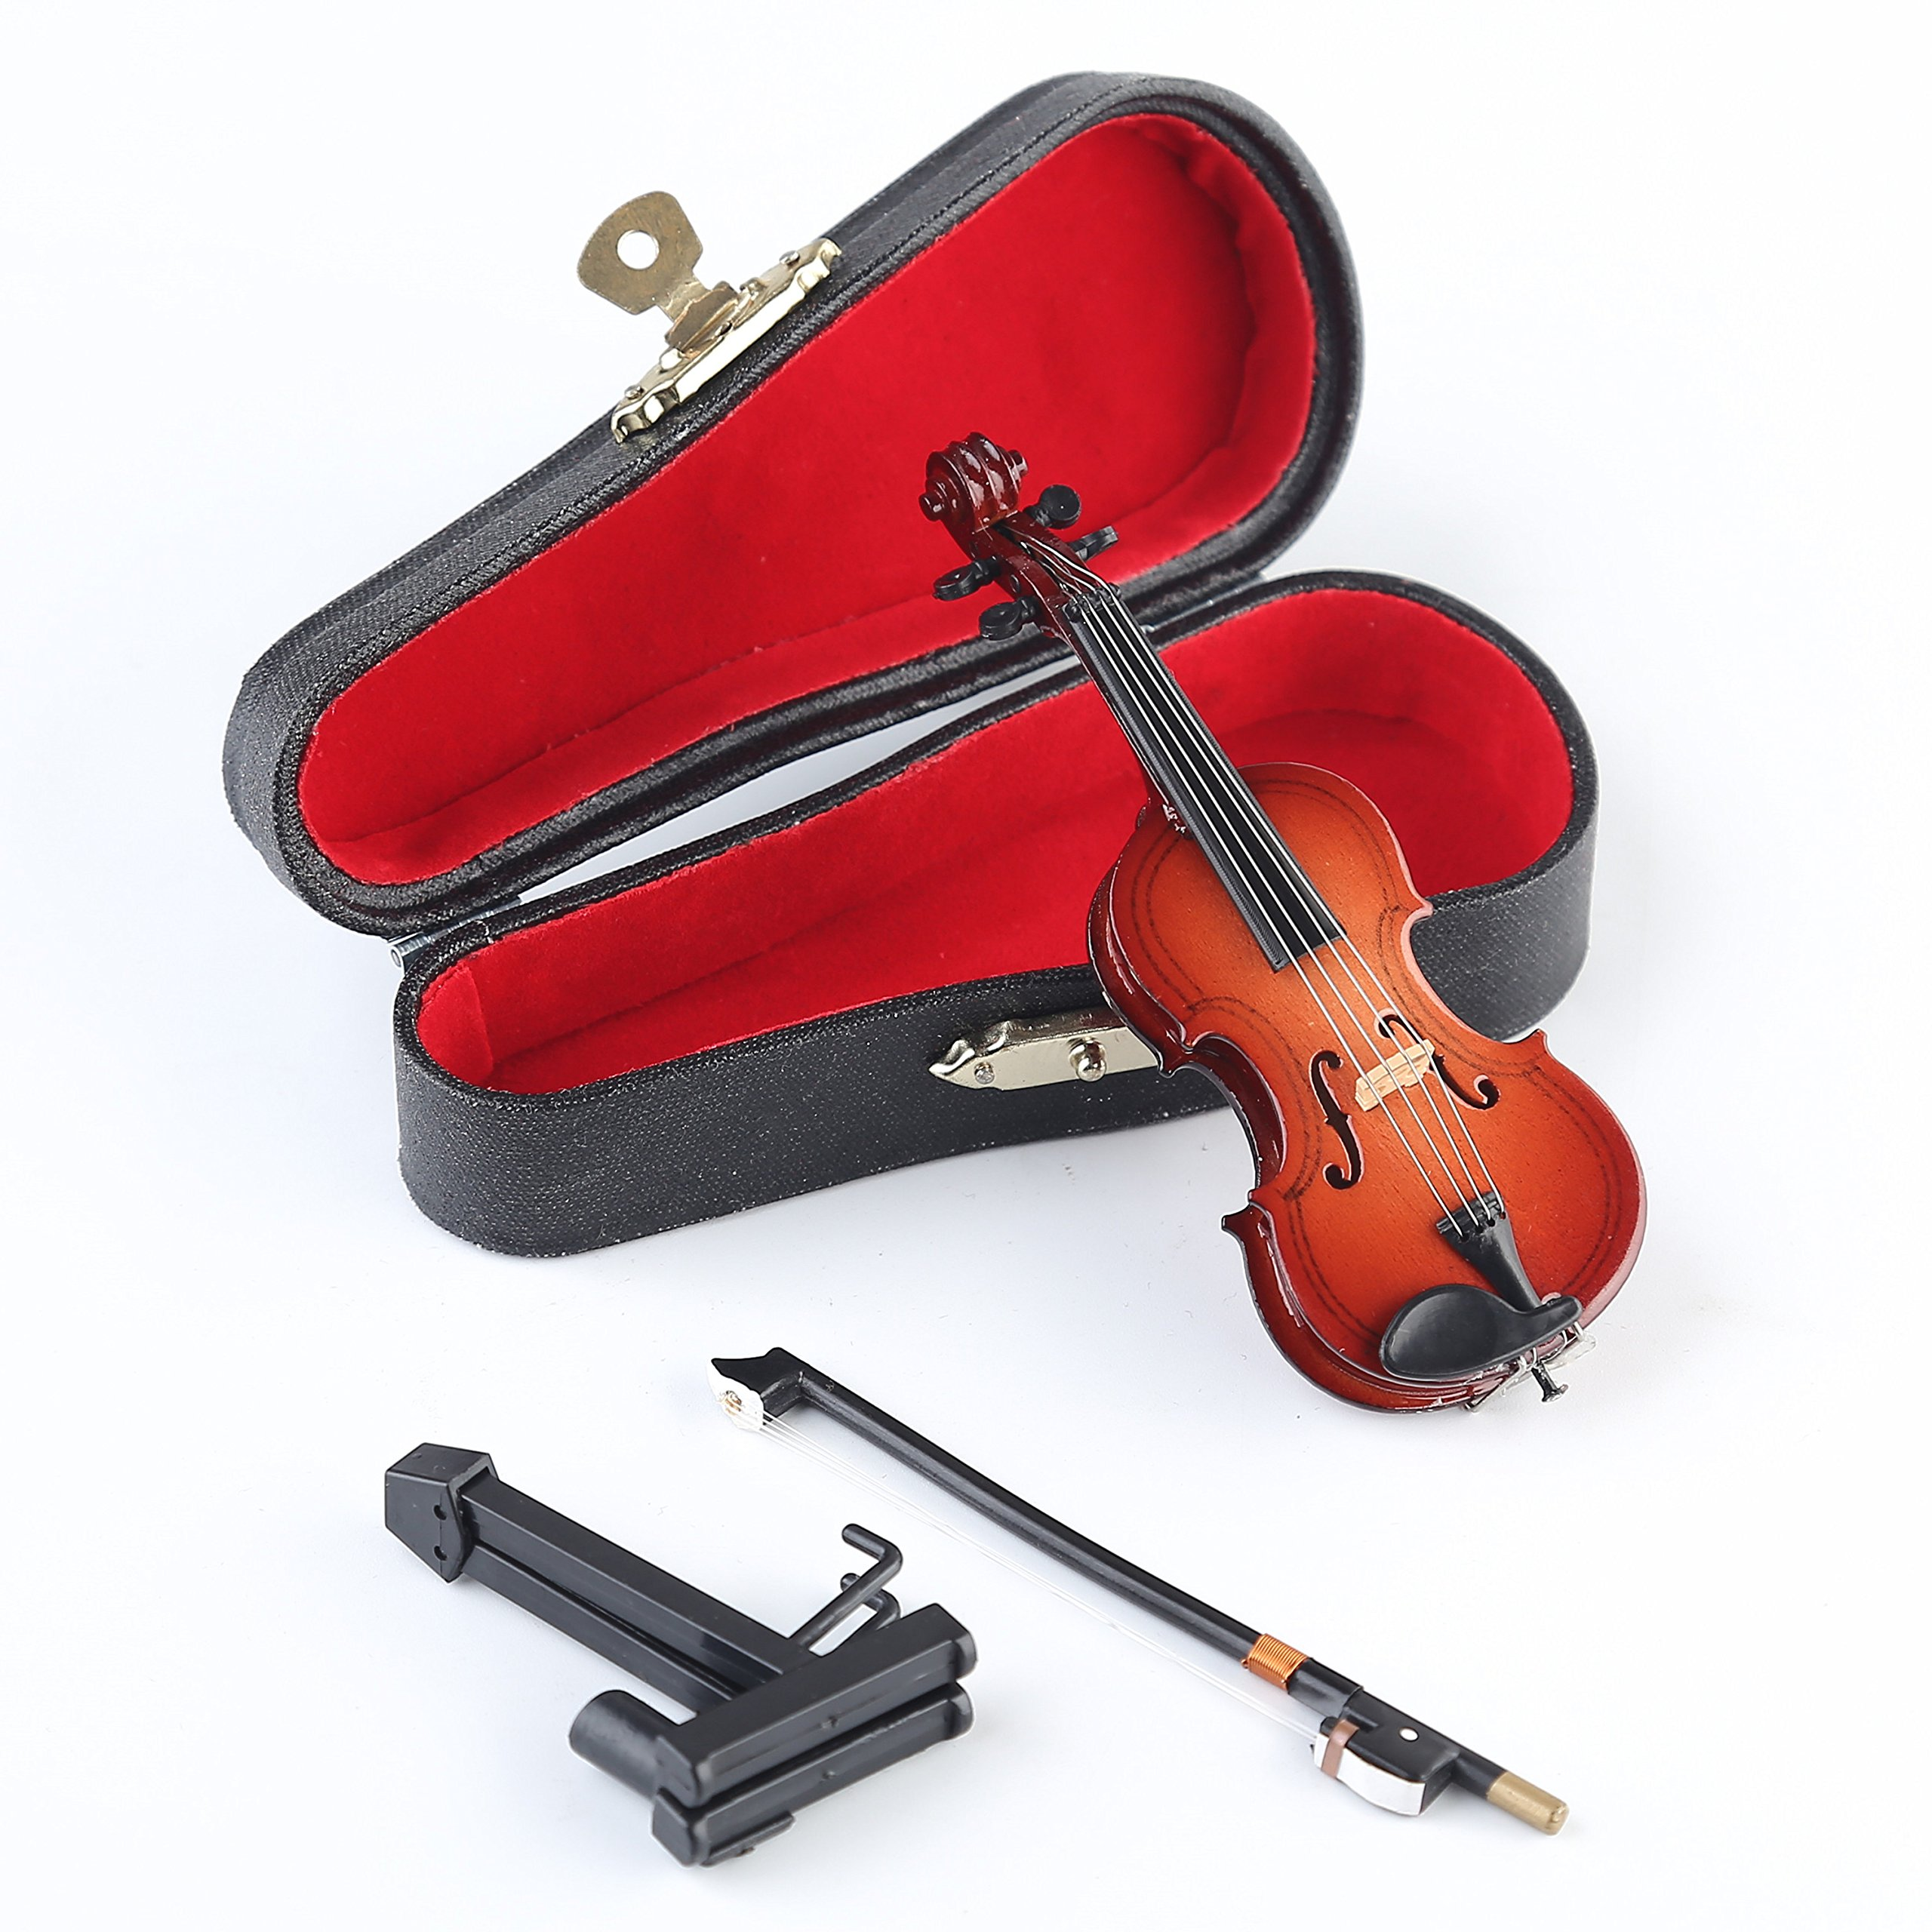 "Dselvgvu Wooden Miniature Violin with Stand,Bow and Case Mini Musical Instrument Miniature Dollhouse Model Home Decoration (3.94""x1.57""x0.63"")"